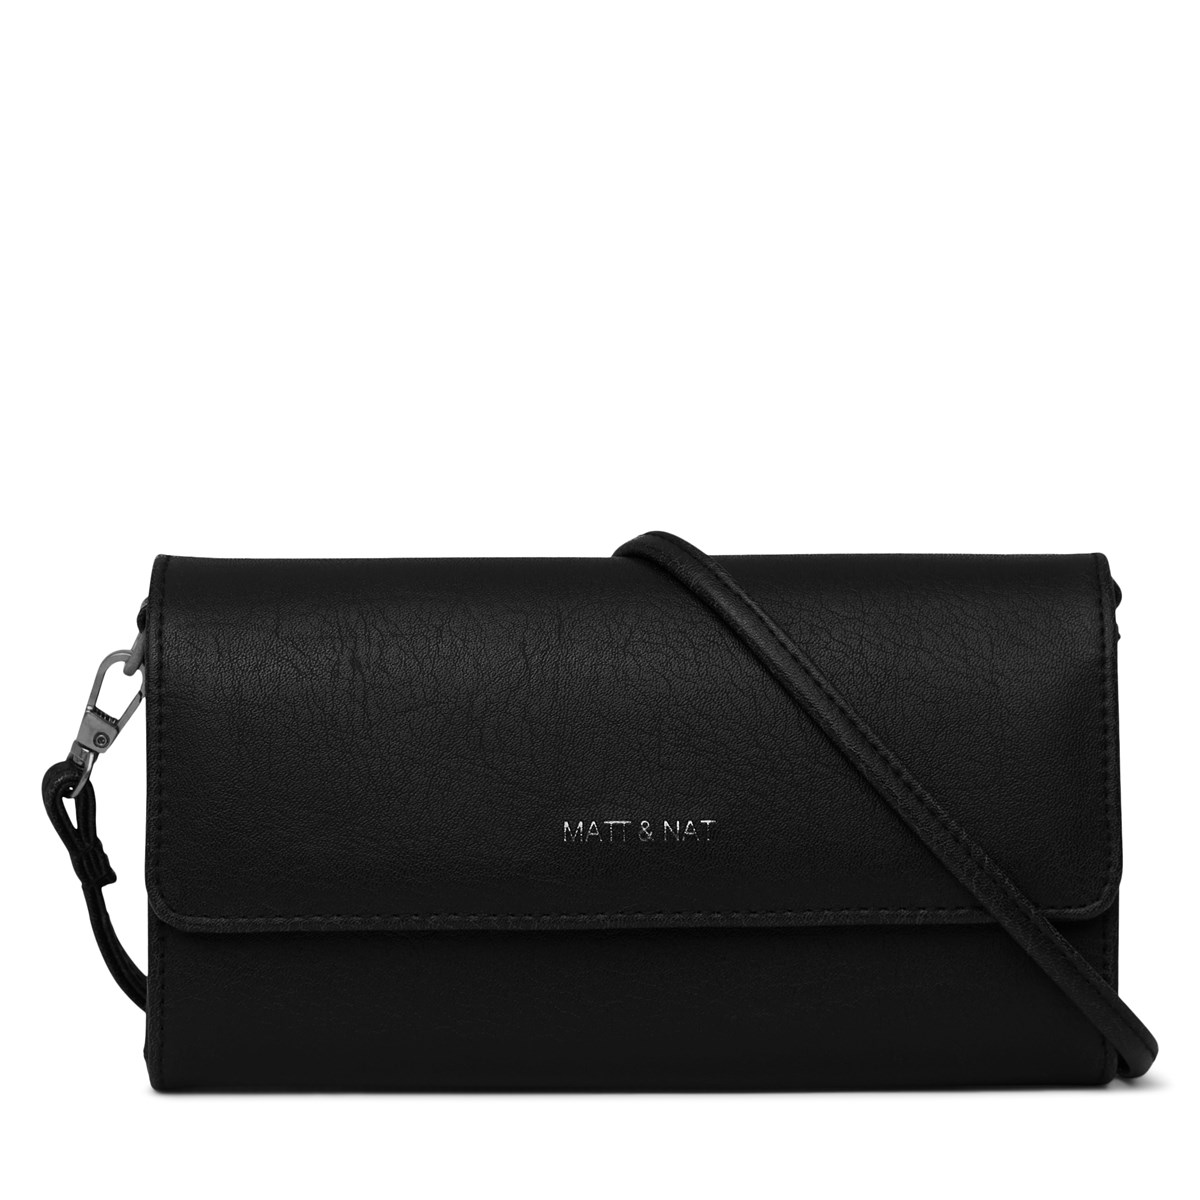 Drewmed Crossbody Bag in Black